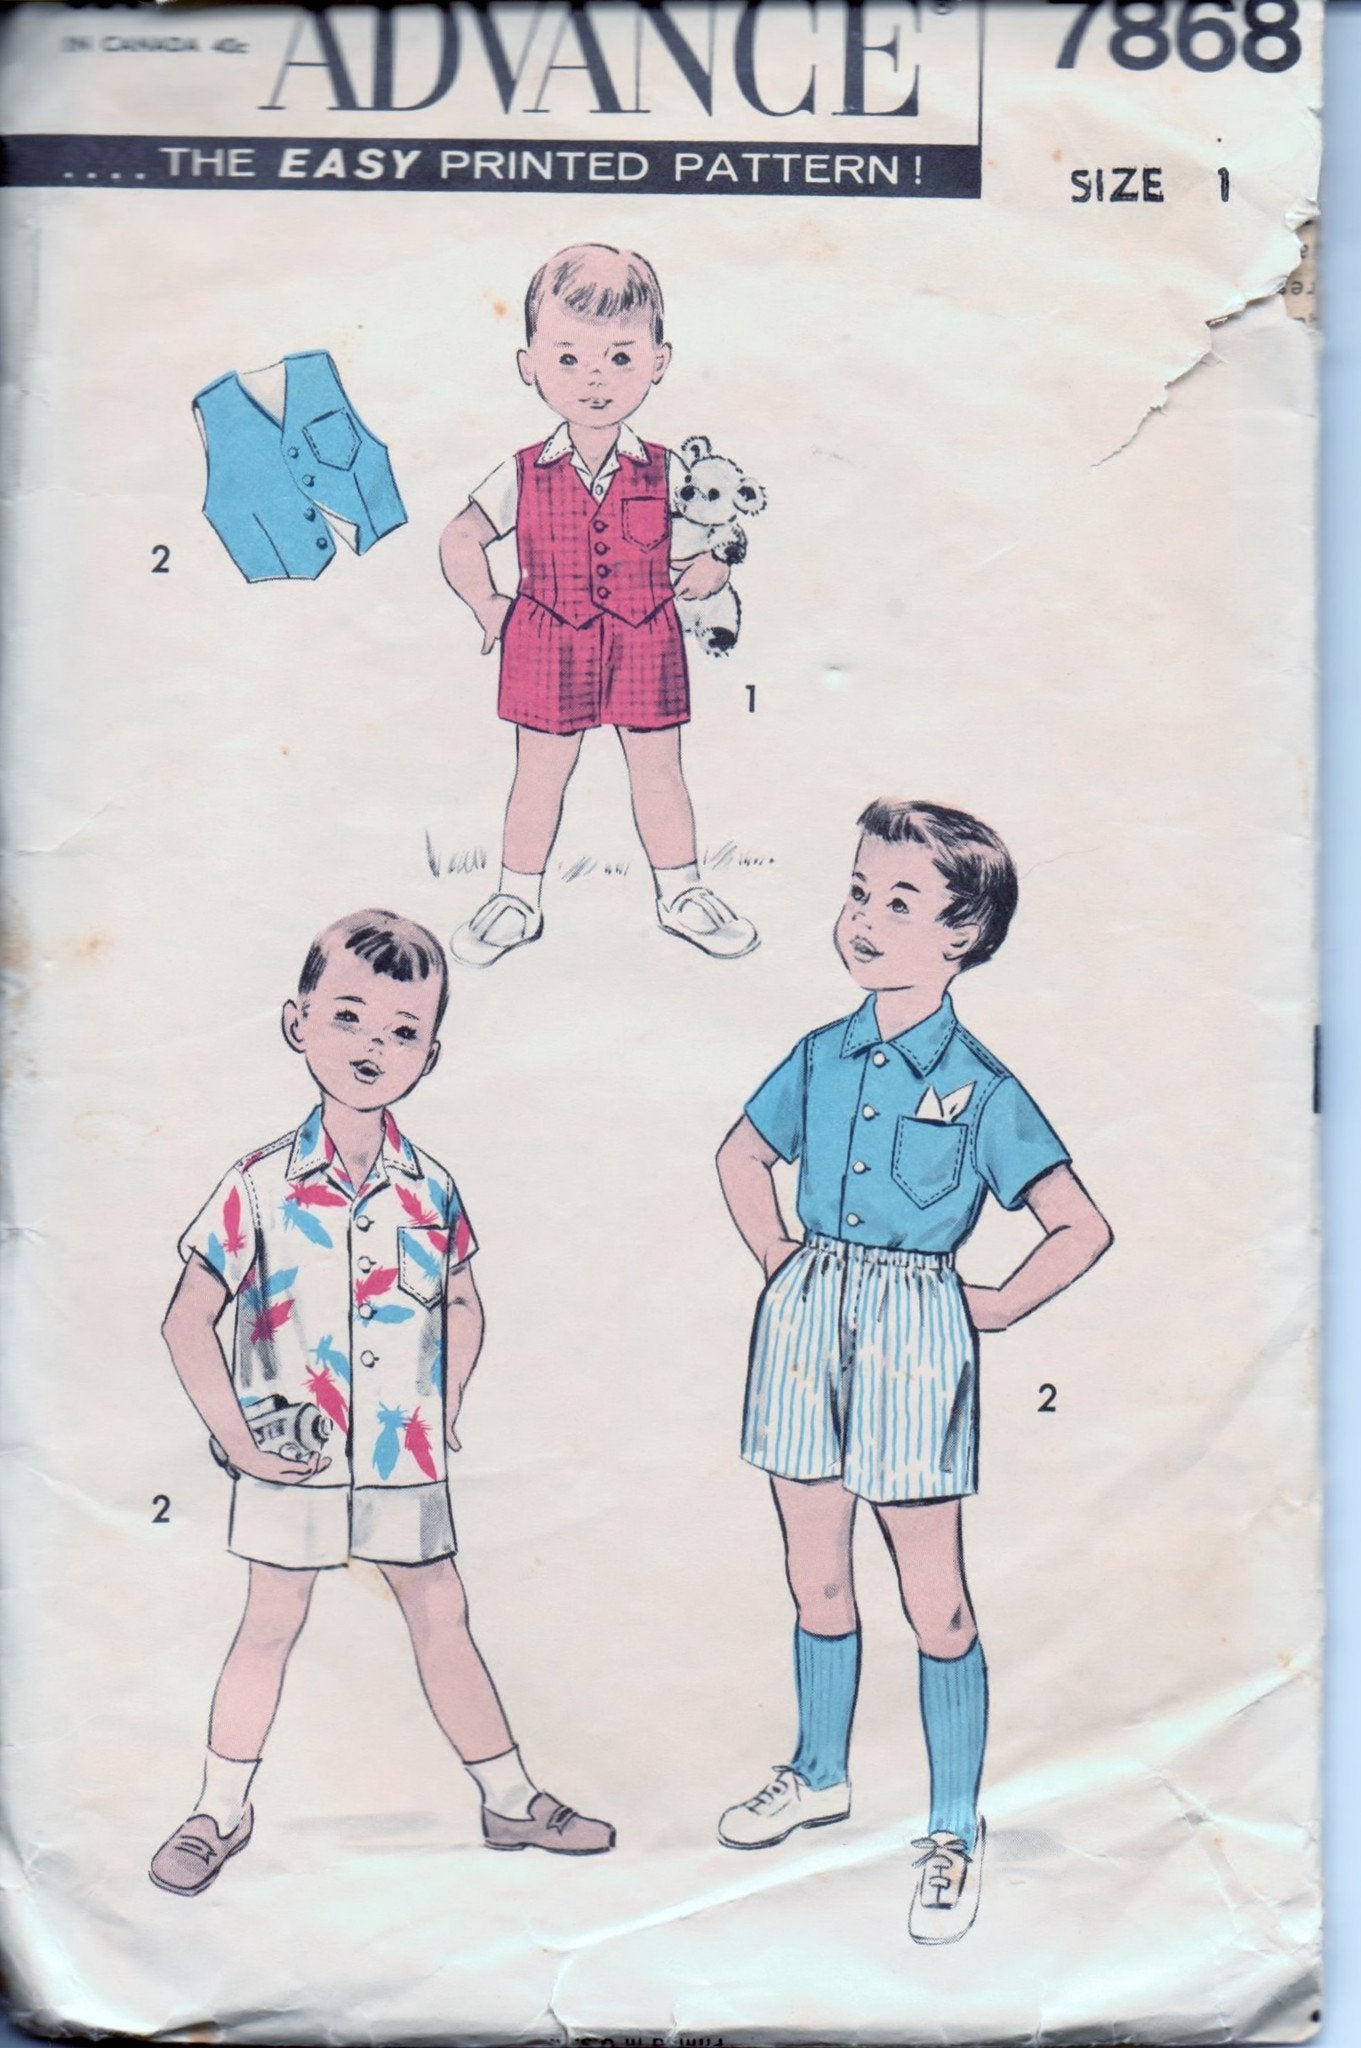 Advance 7868 Toddler Boys Boxer Shorts Vest Shirt Vintage 1950's Sewing Pattern - VintageStitching - Vintage Sewing Patterns